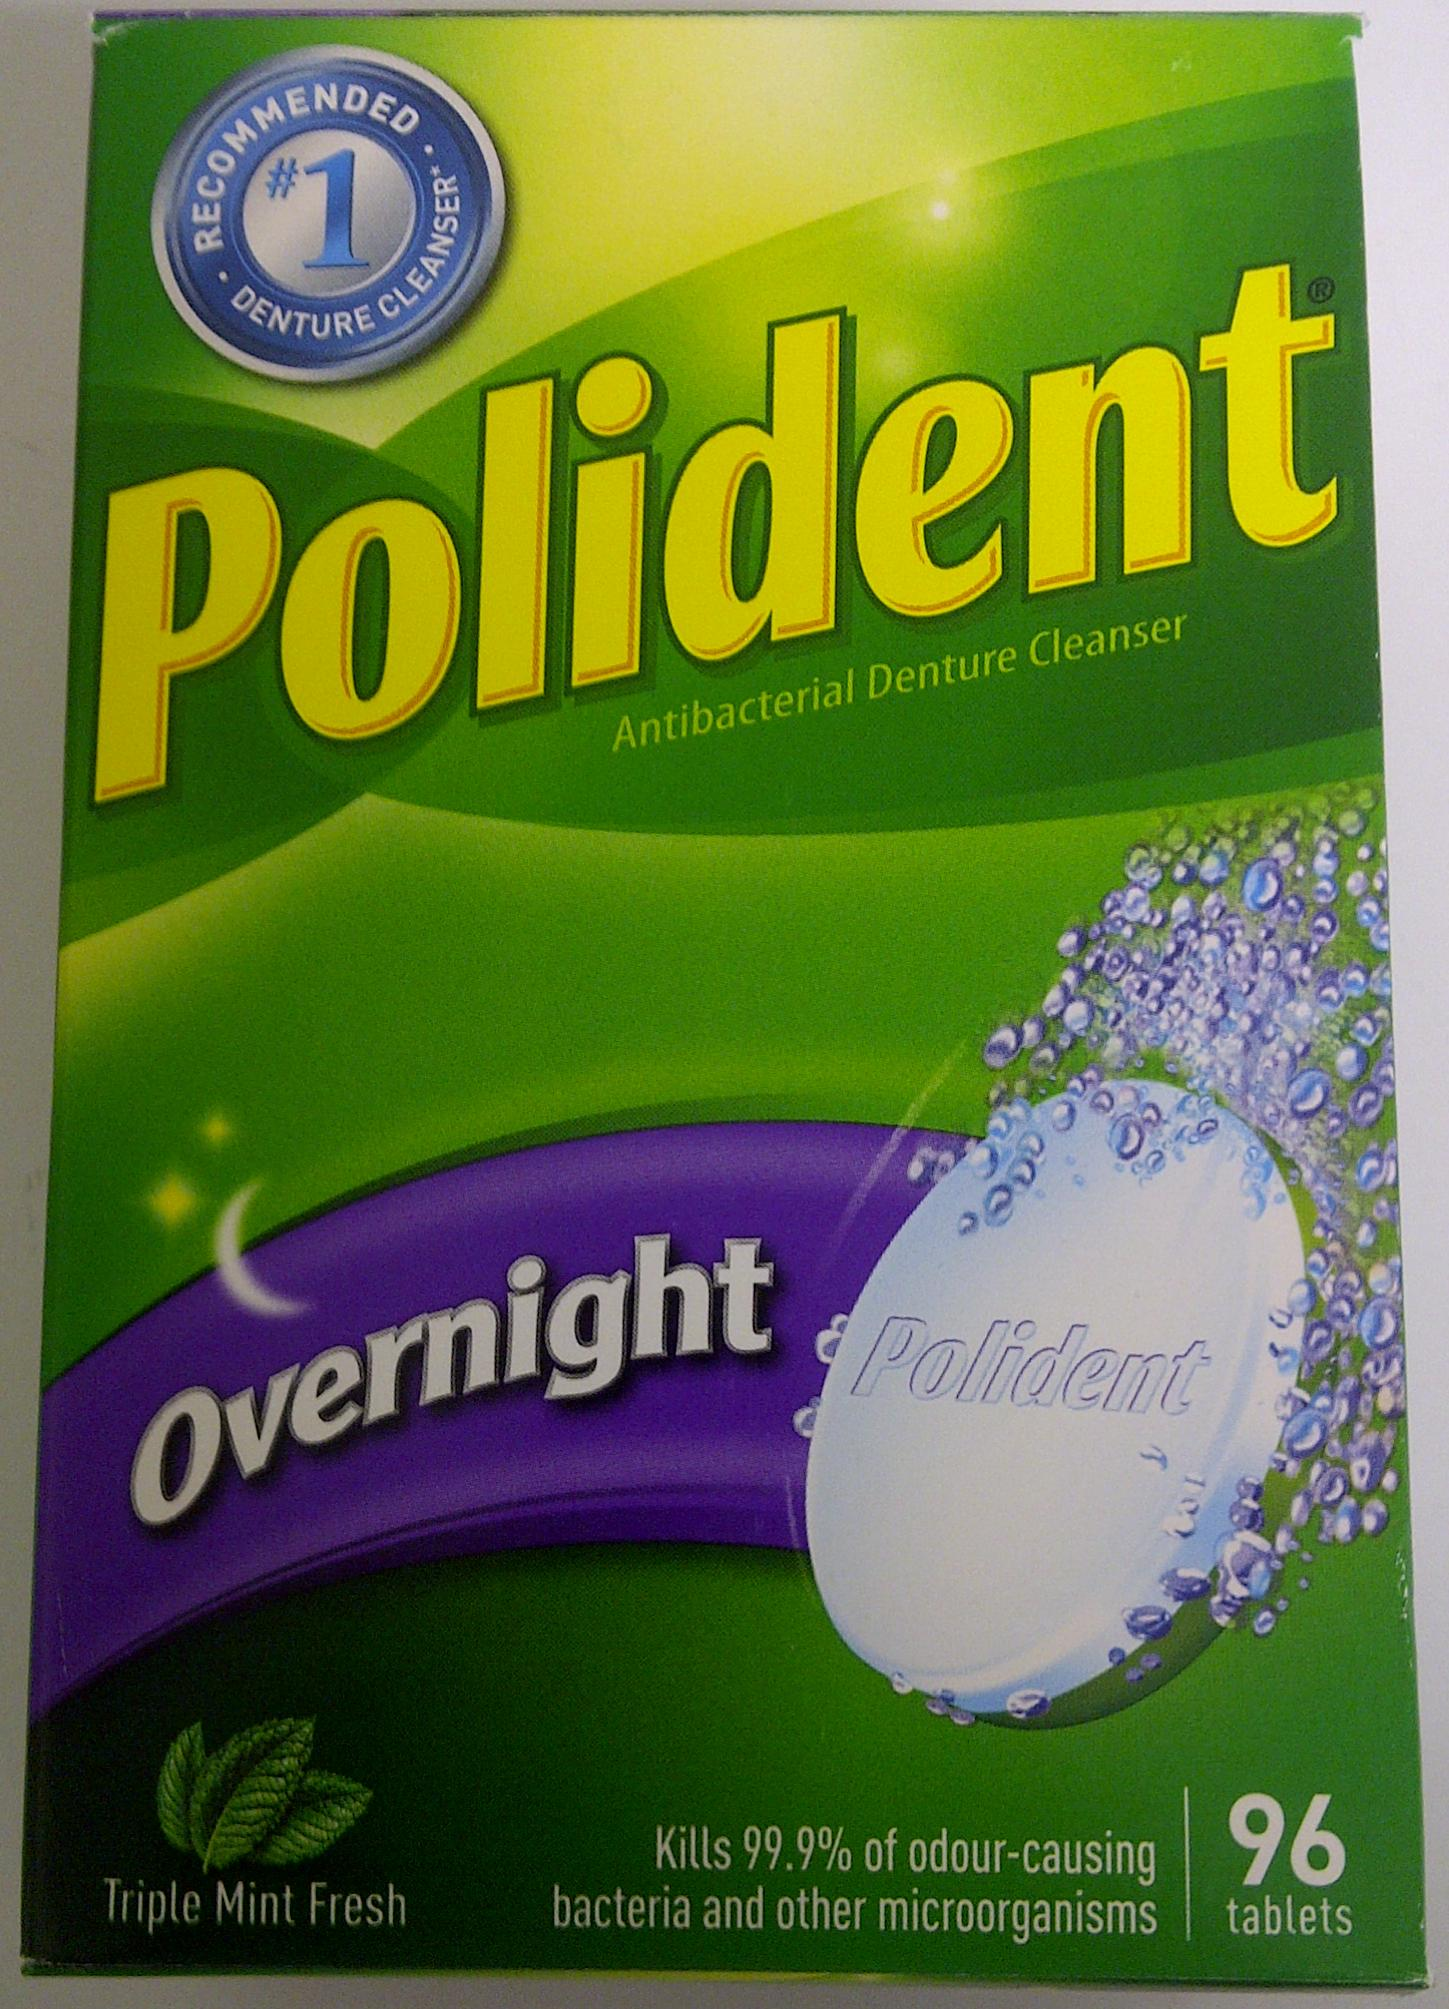 File:Overnight Polident Denture Cleaner.jpg